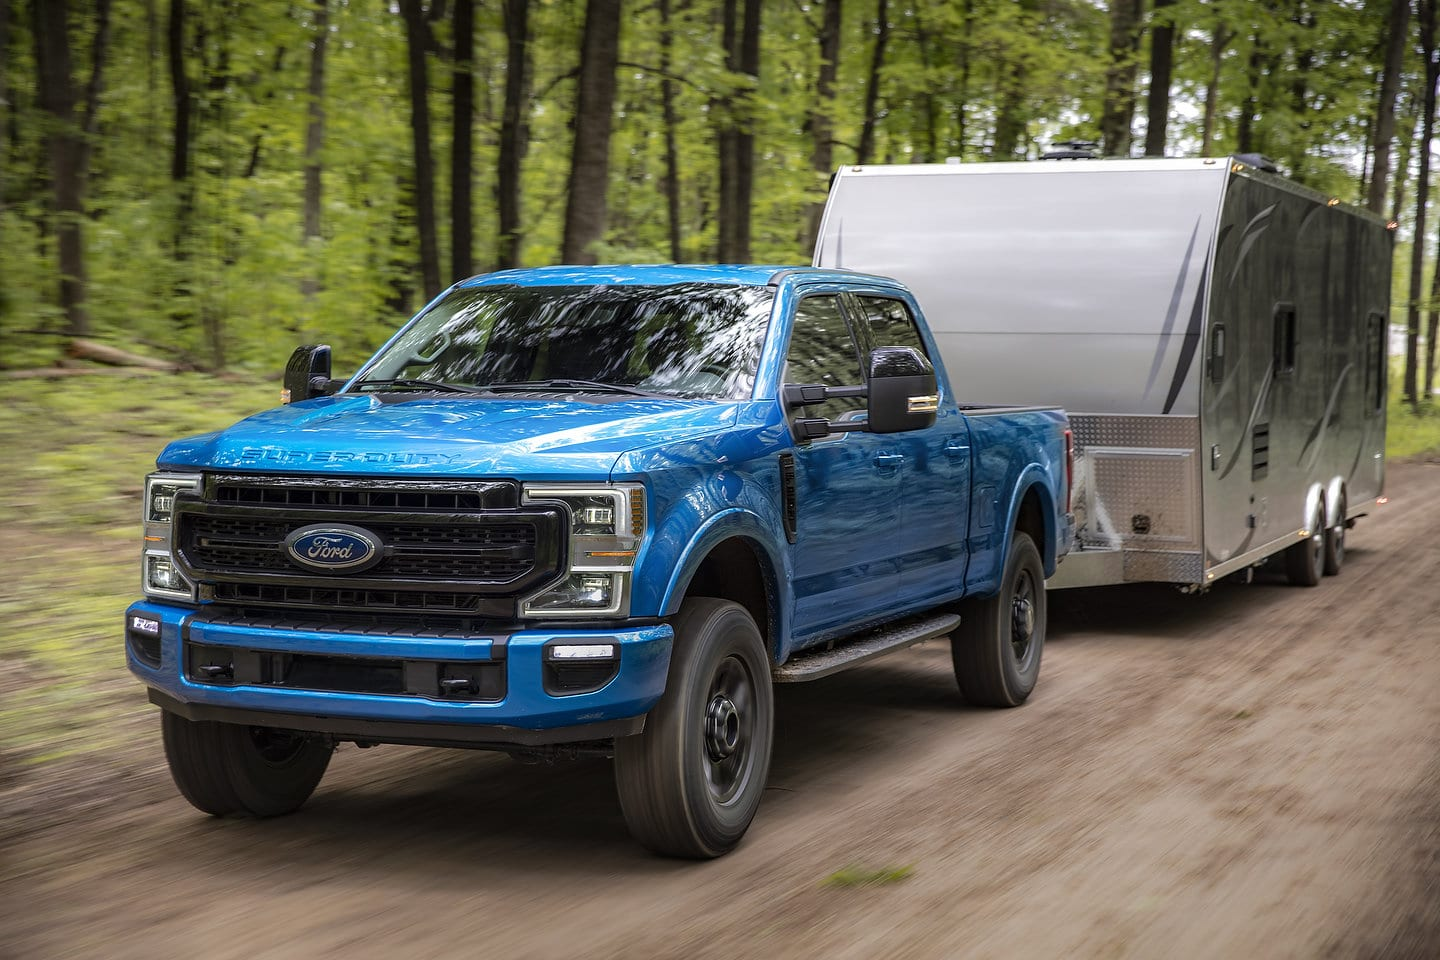 All-New 2020 Ford F-Series Super Duty Gets A Tremor Off ...